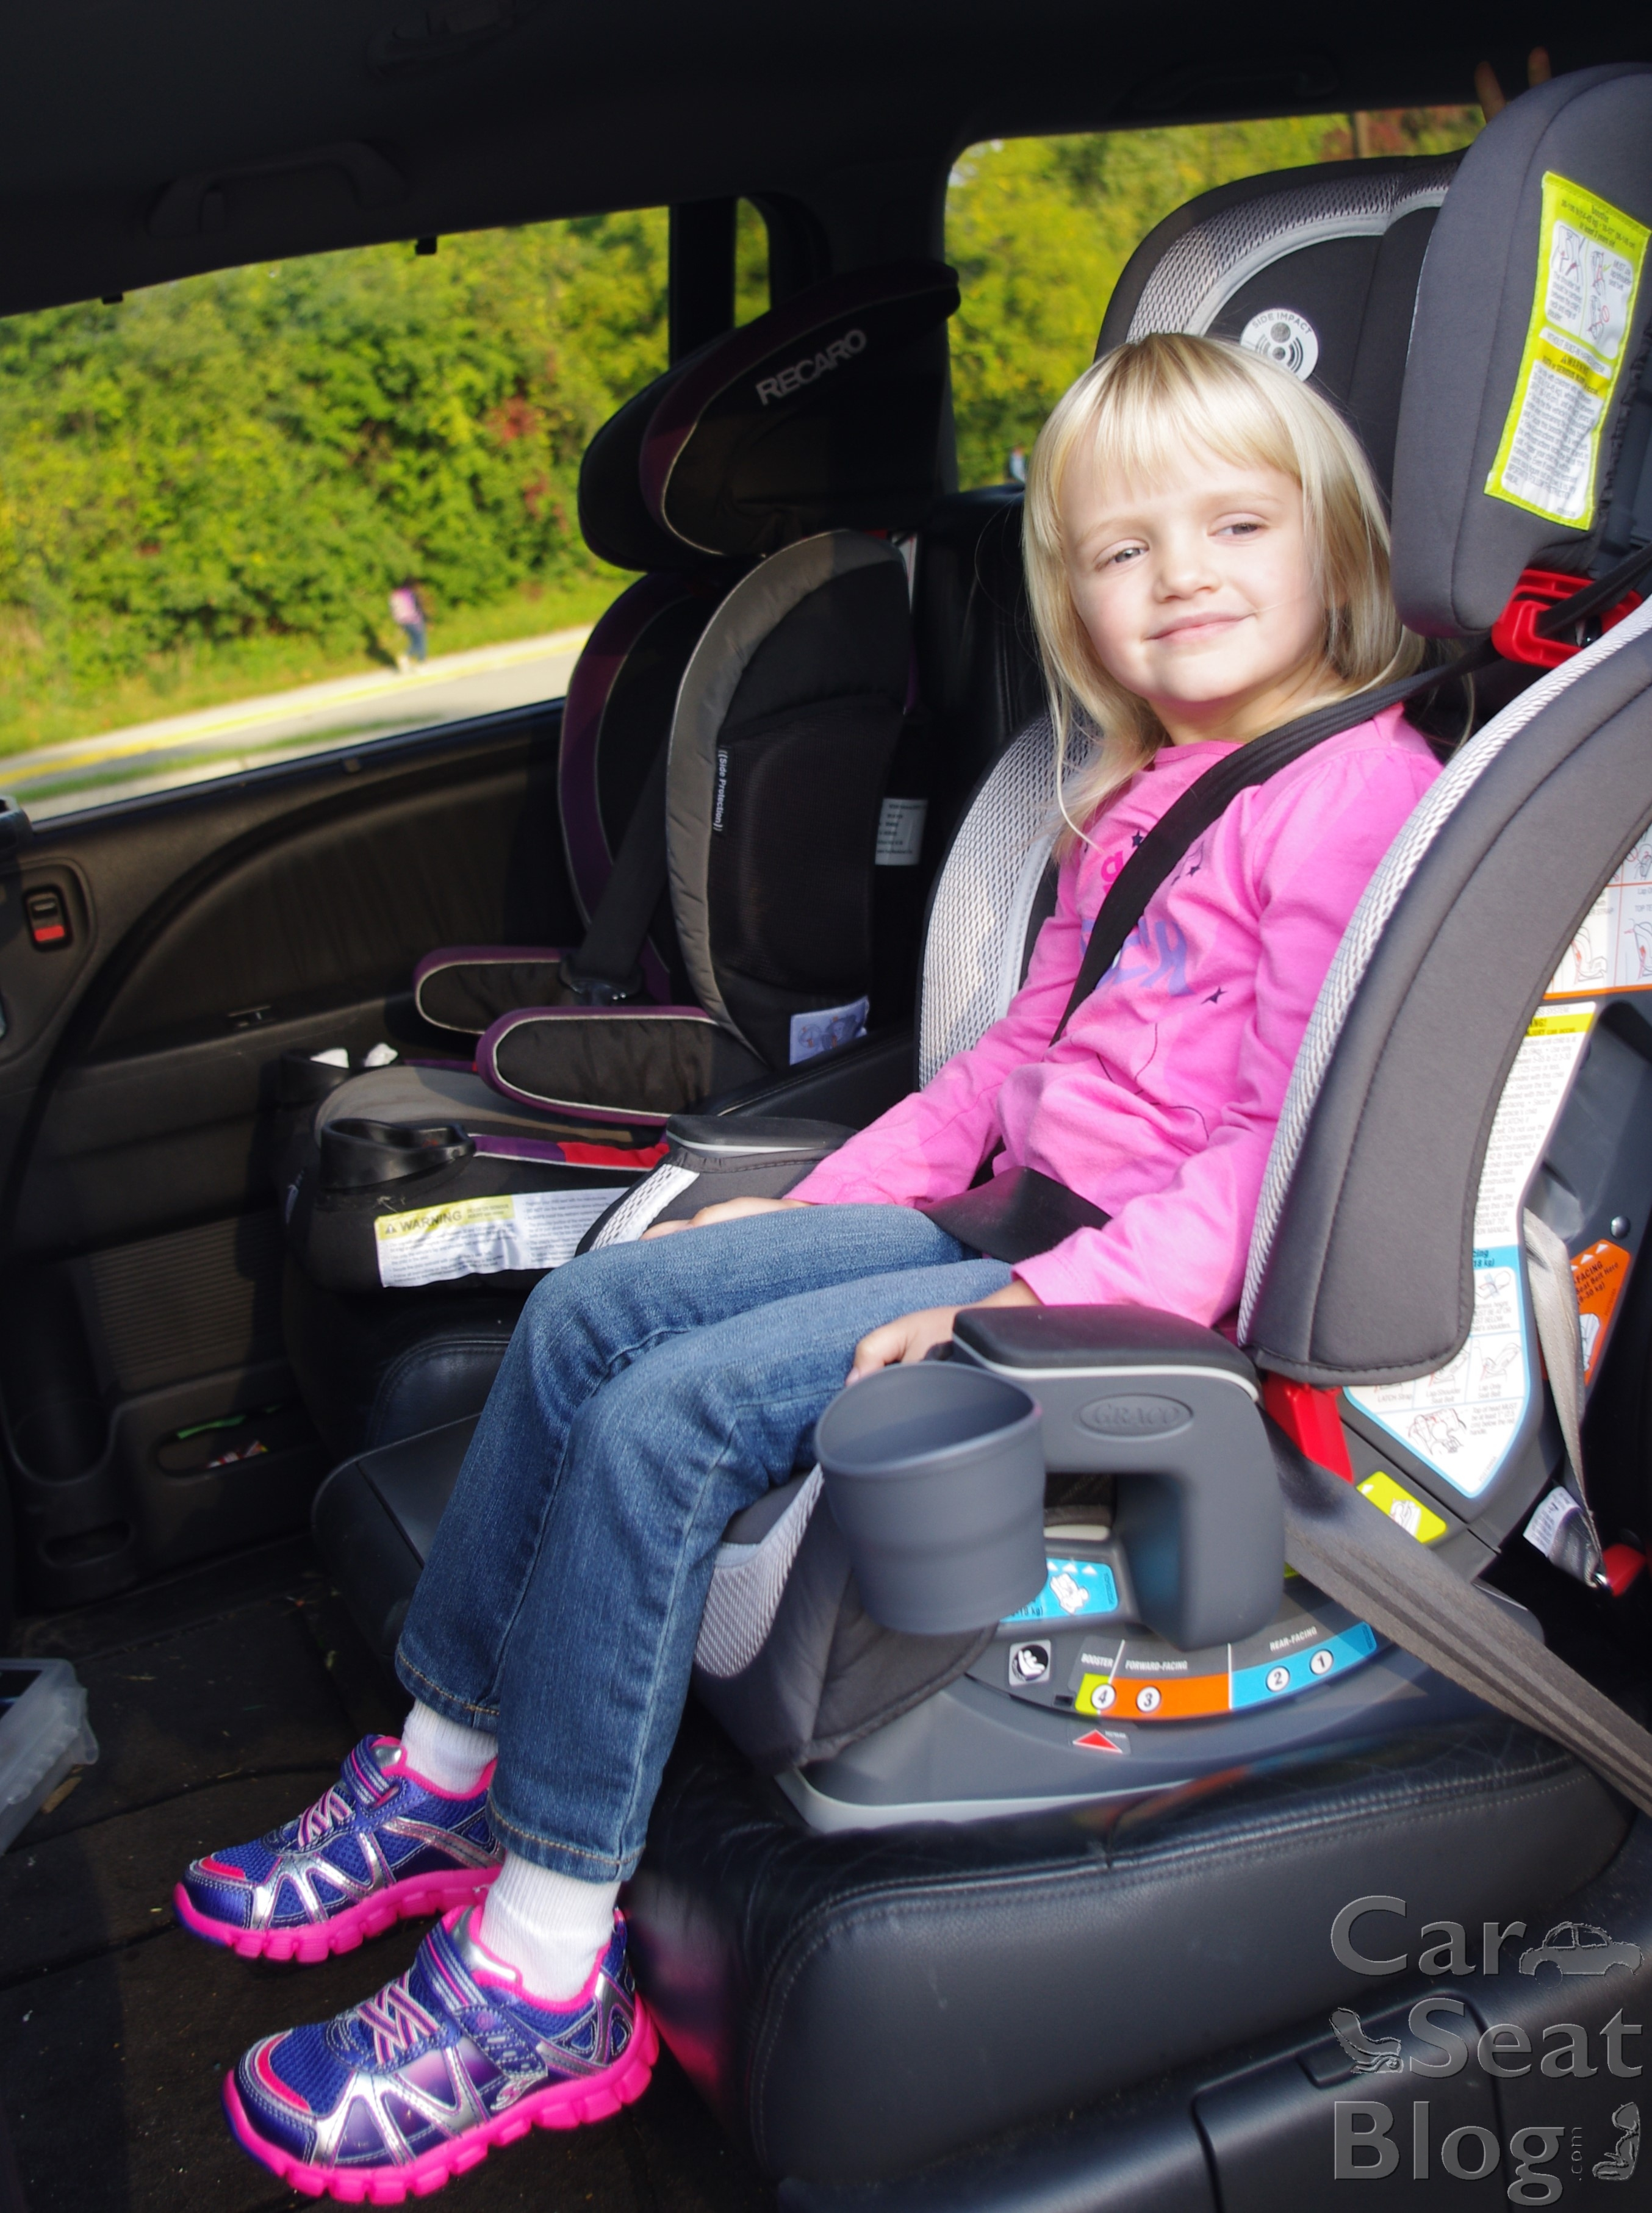 Car Seat Seat Cover >> CarseatBlog: The Most Trusted Source for Car Seat Reviews, Ratings, Deals & News